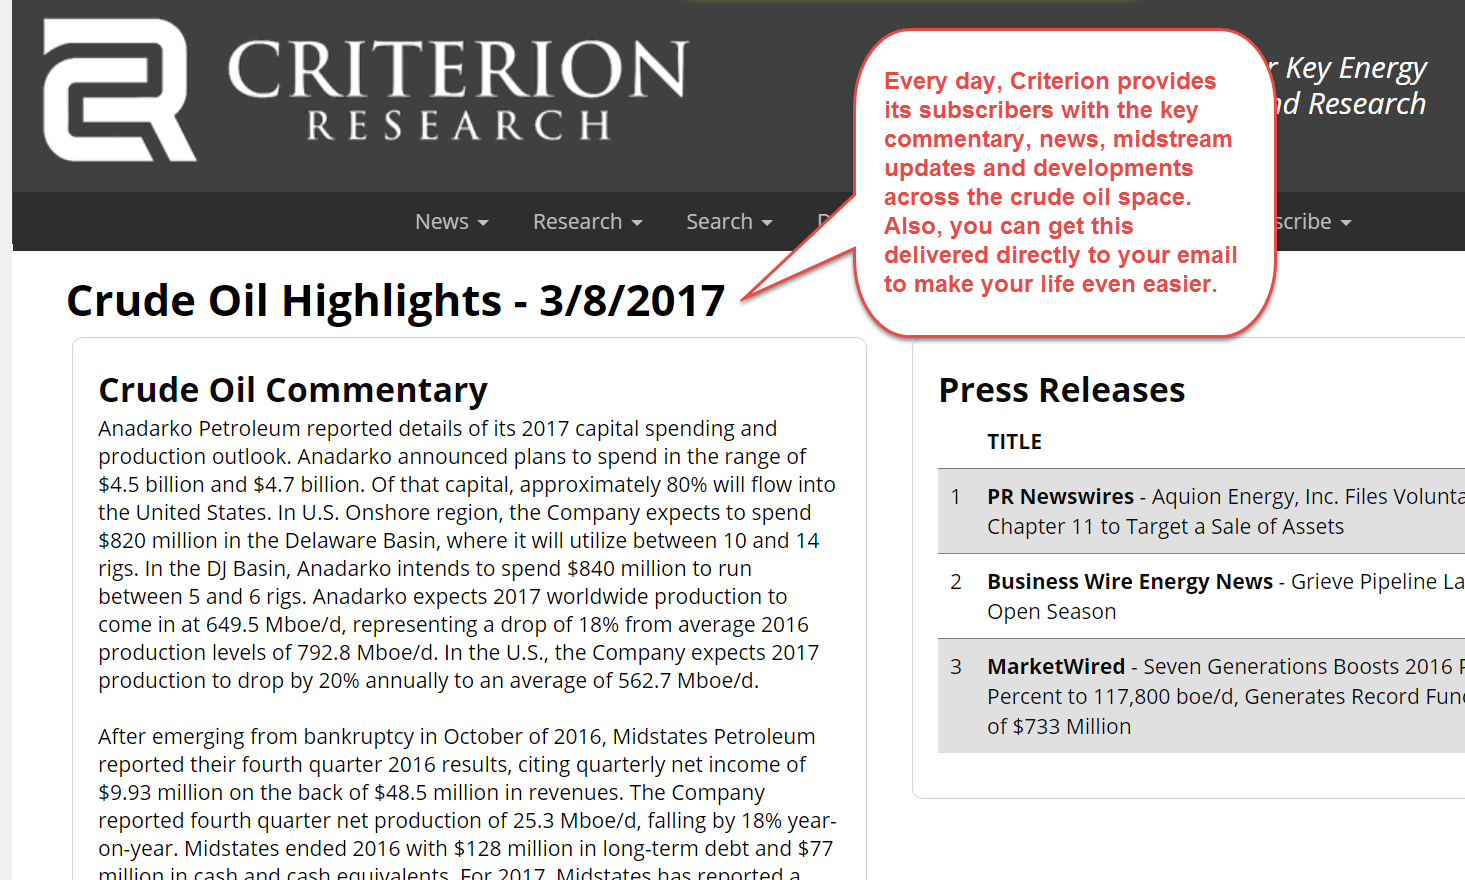 Criterion's Crude Oil Daily Highlights.  Key information, easily accessible.